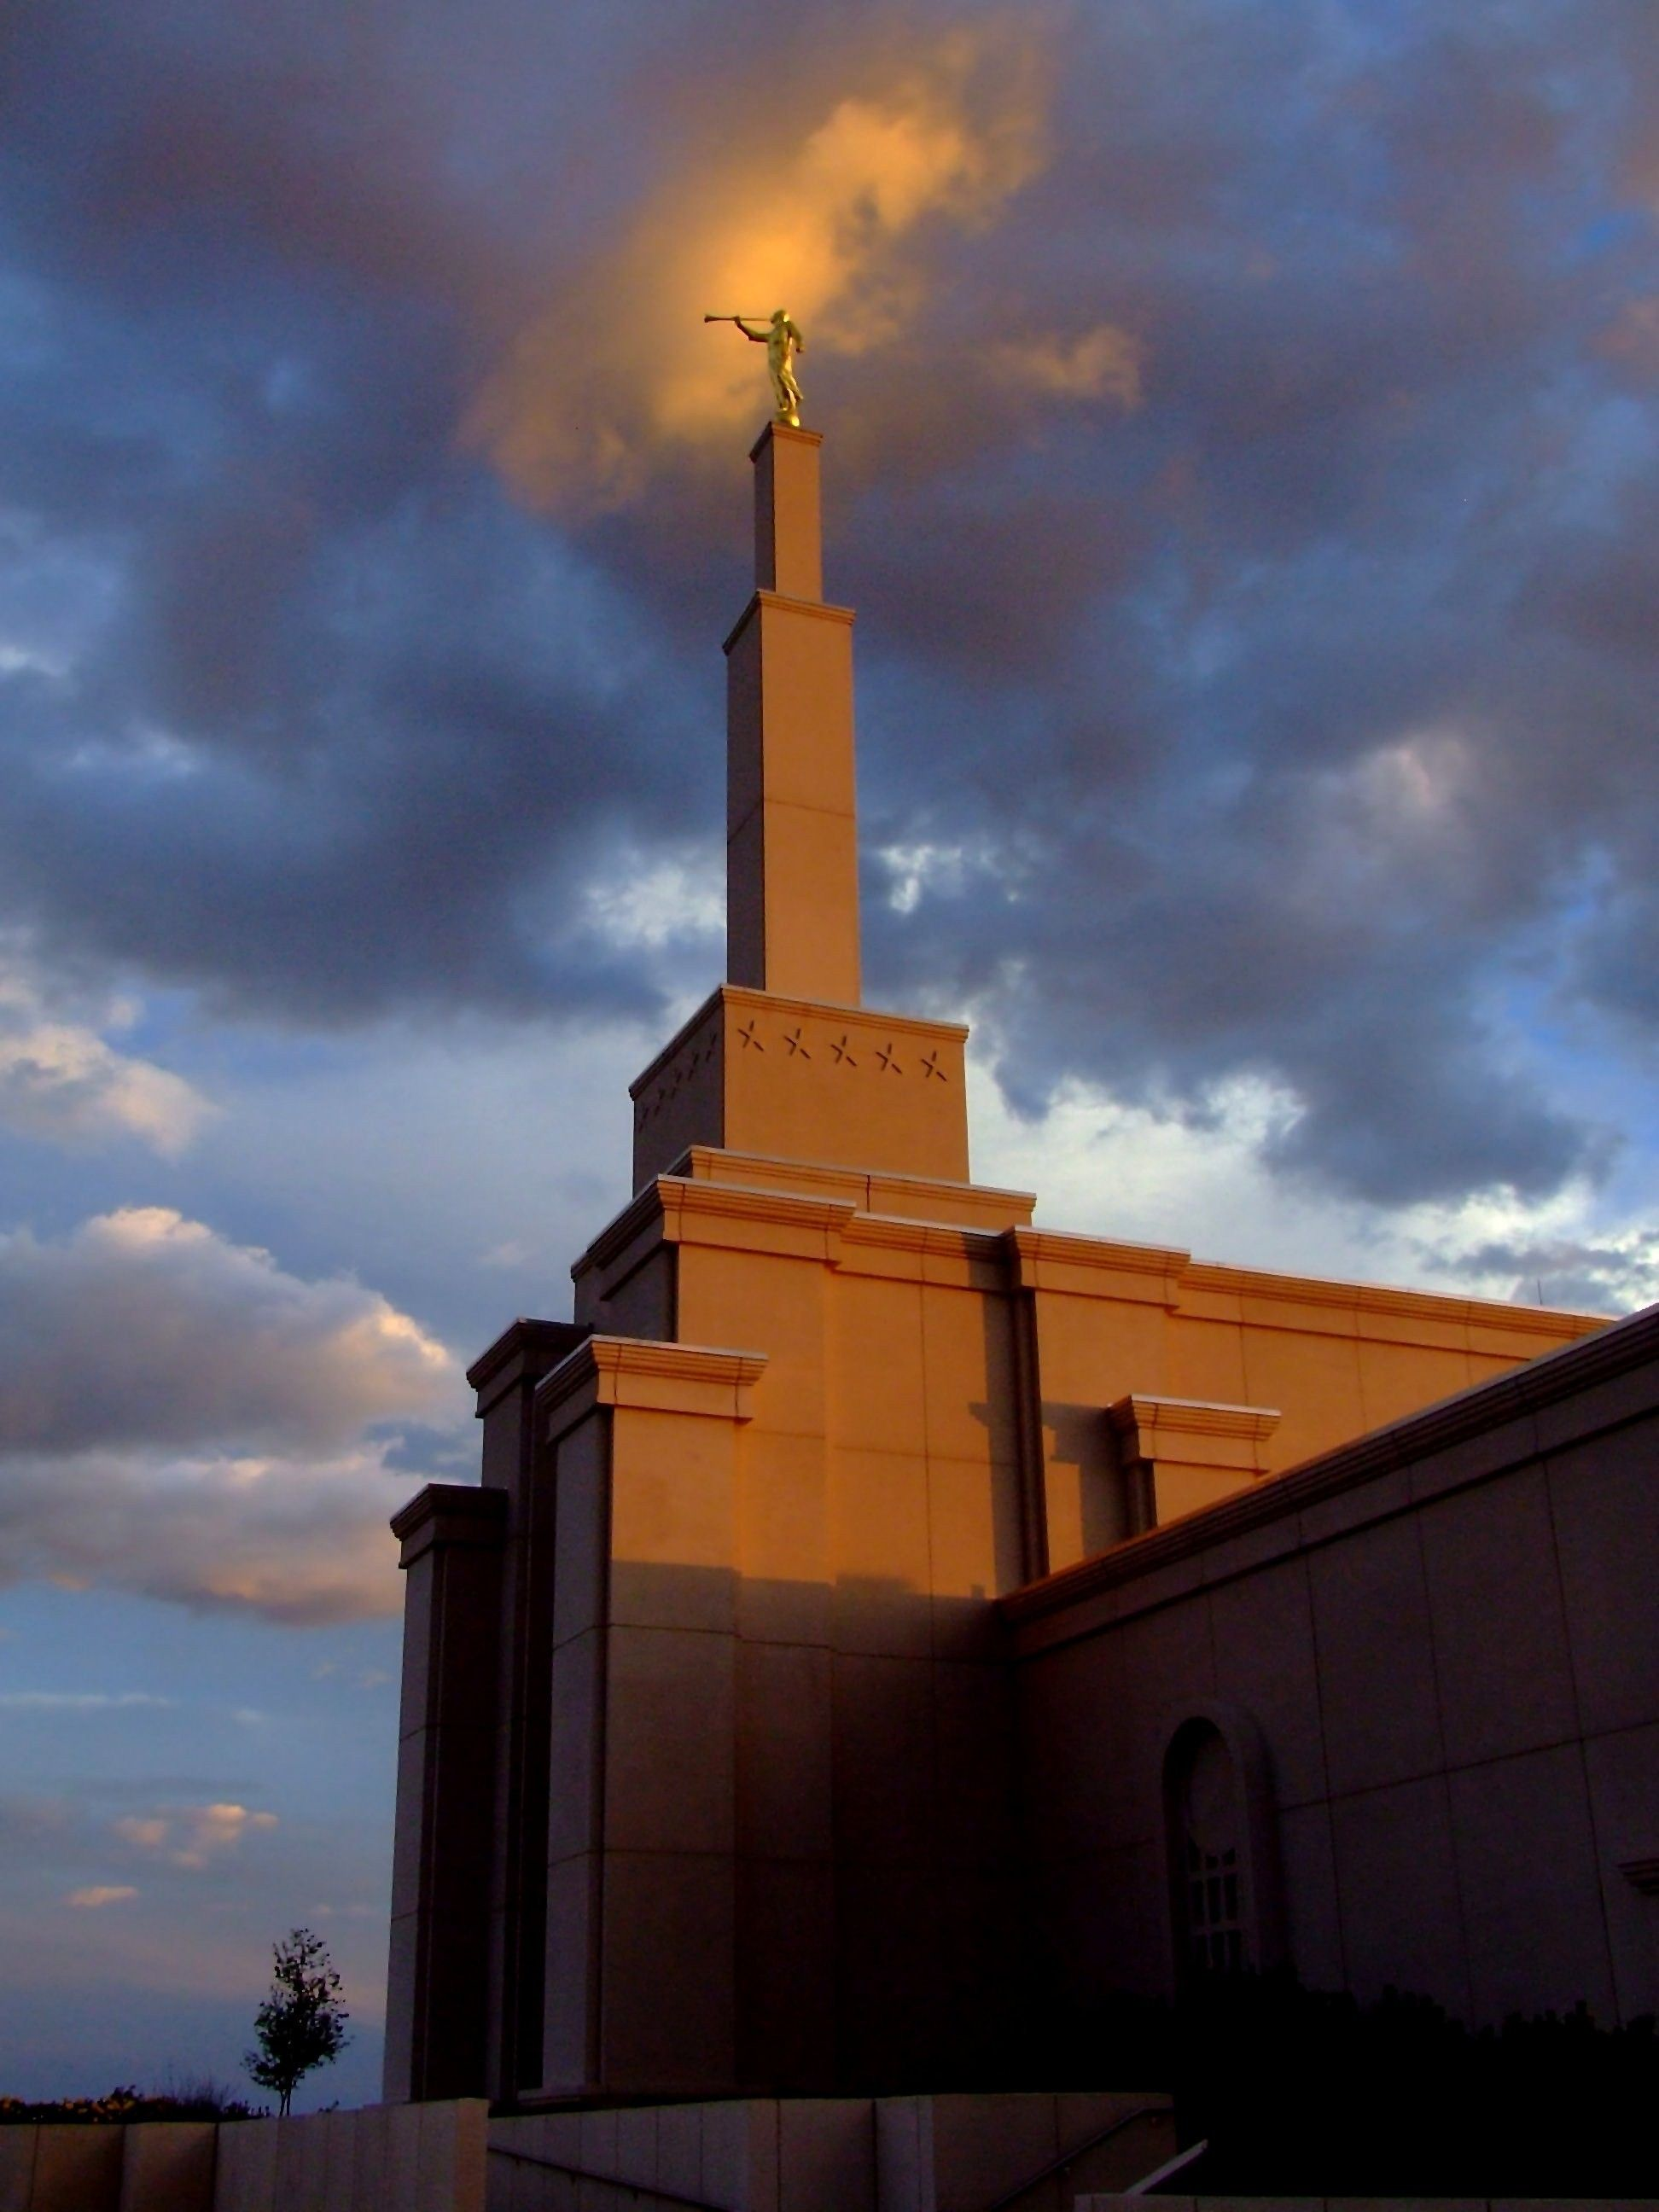 The tall spire on the Albuquerque New Mexico Temple in the evening.